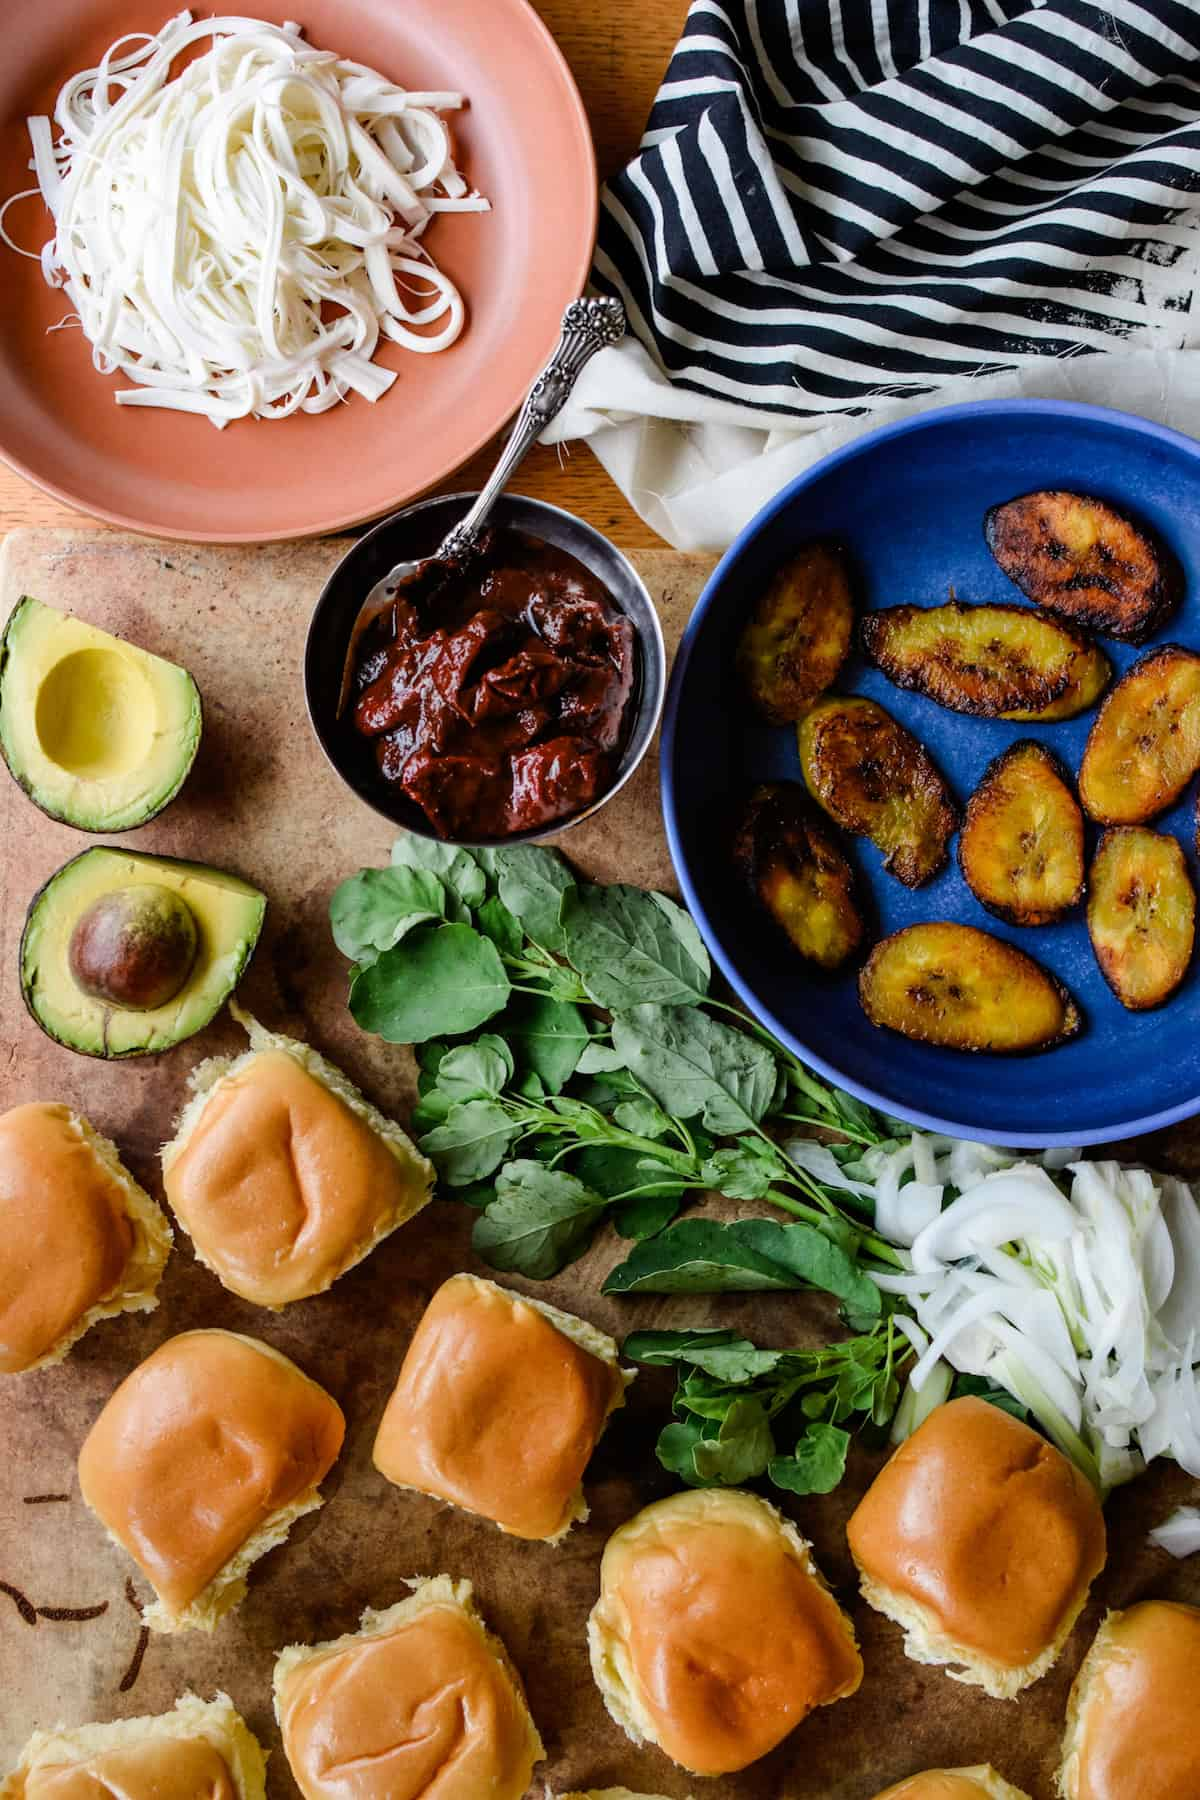 Slider rolls, a halved avocado, a plate of Queso Oaxaca, chipotles, and a dish of fried plantains on a table.